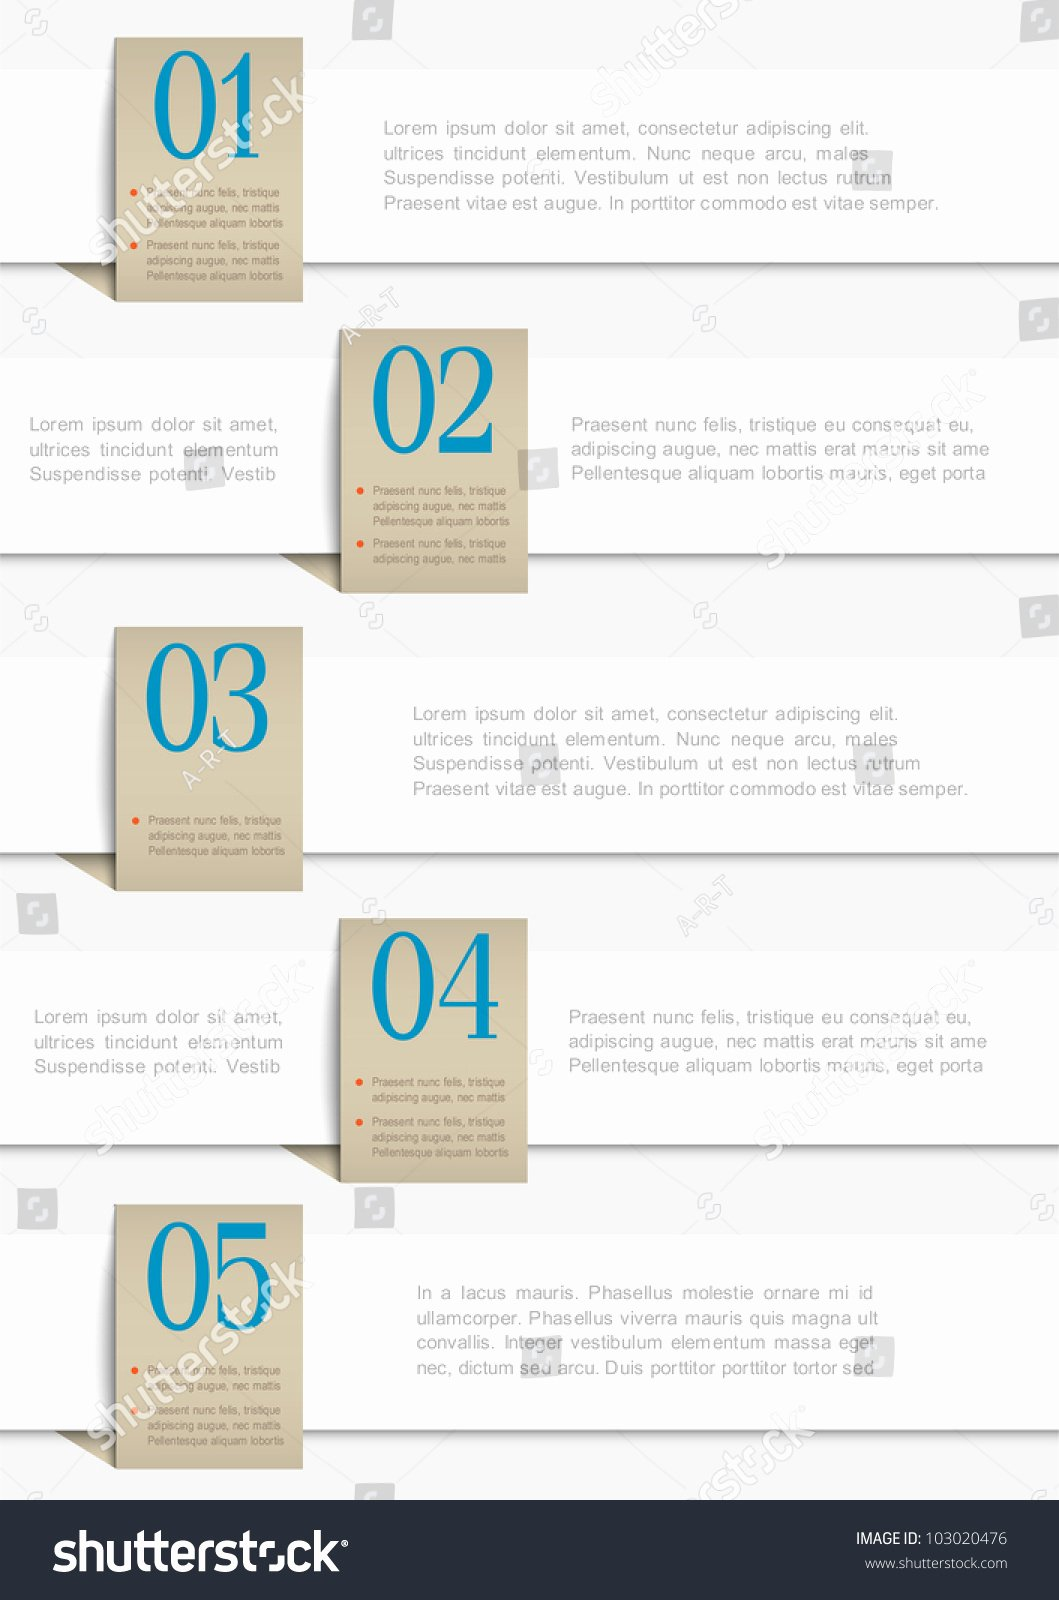 White Paper Design Template Best Of White Paper Numbered Banners Vector Design Template